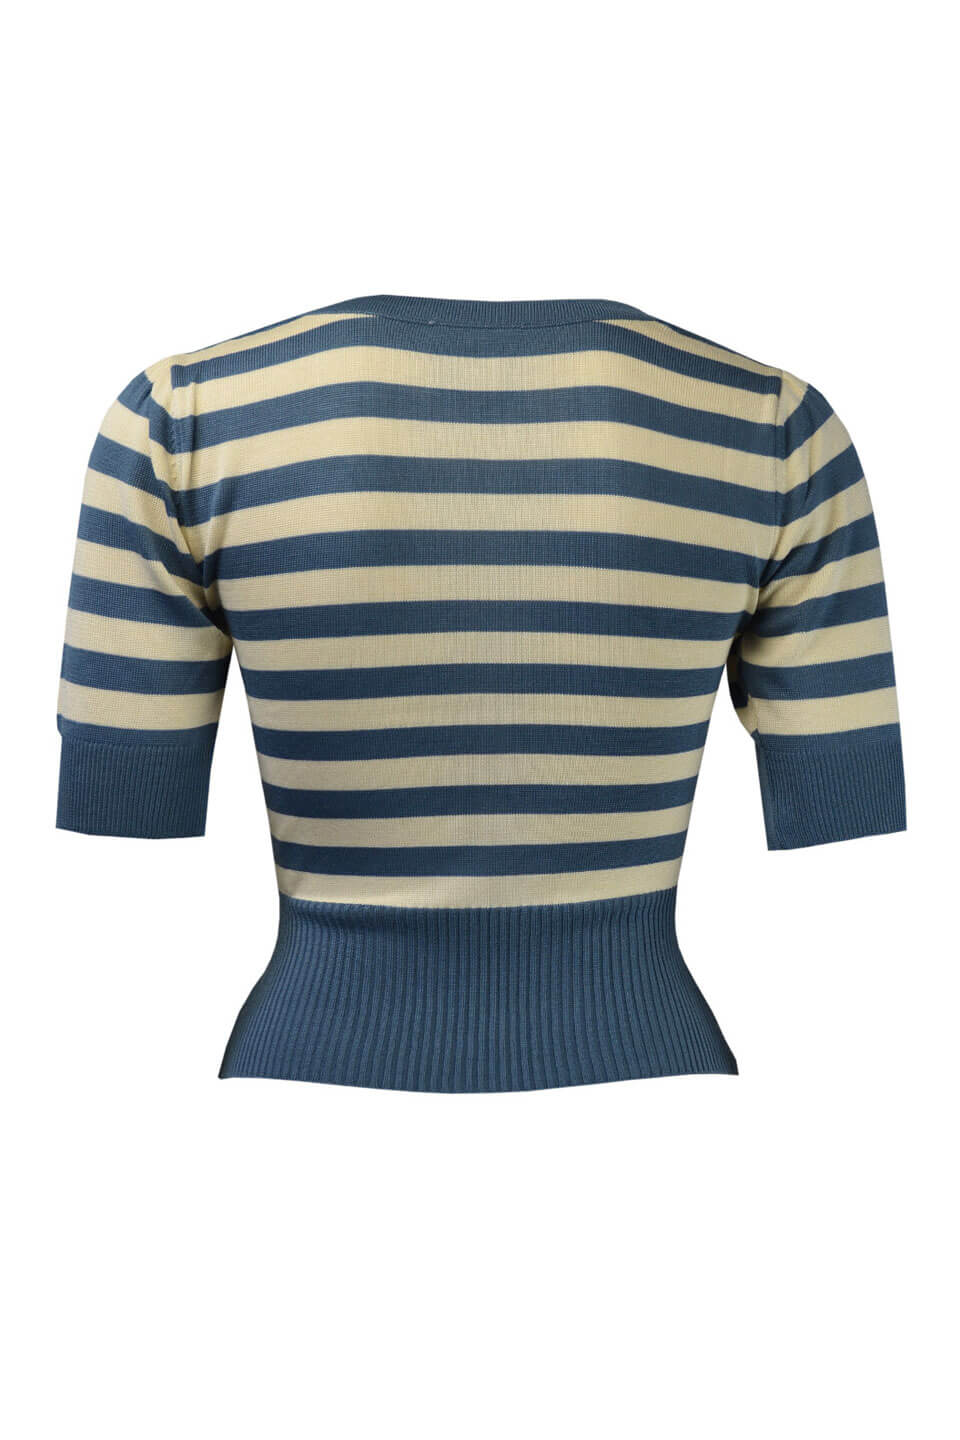 Light Blue and Ivory Striped Boat Neck Jumper By Pretty Retro | Retro Style | Weekend Doll